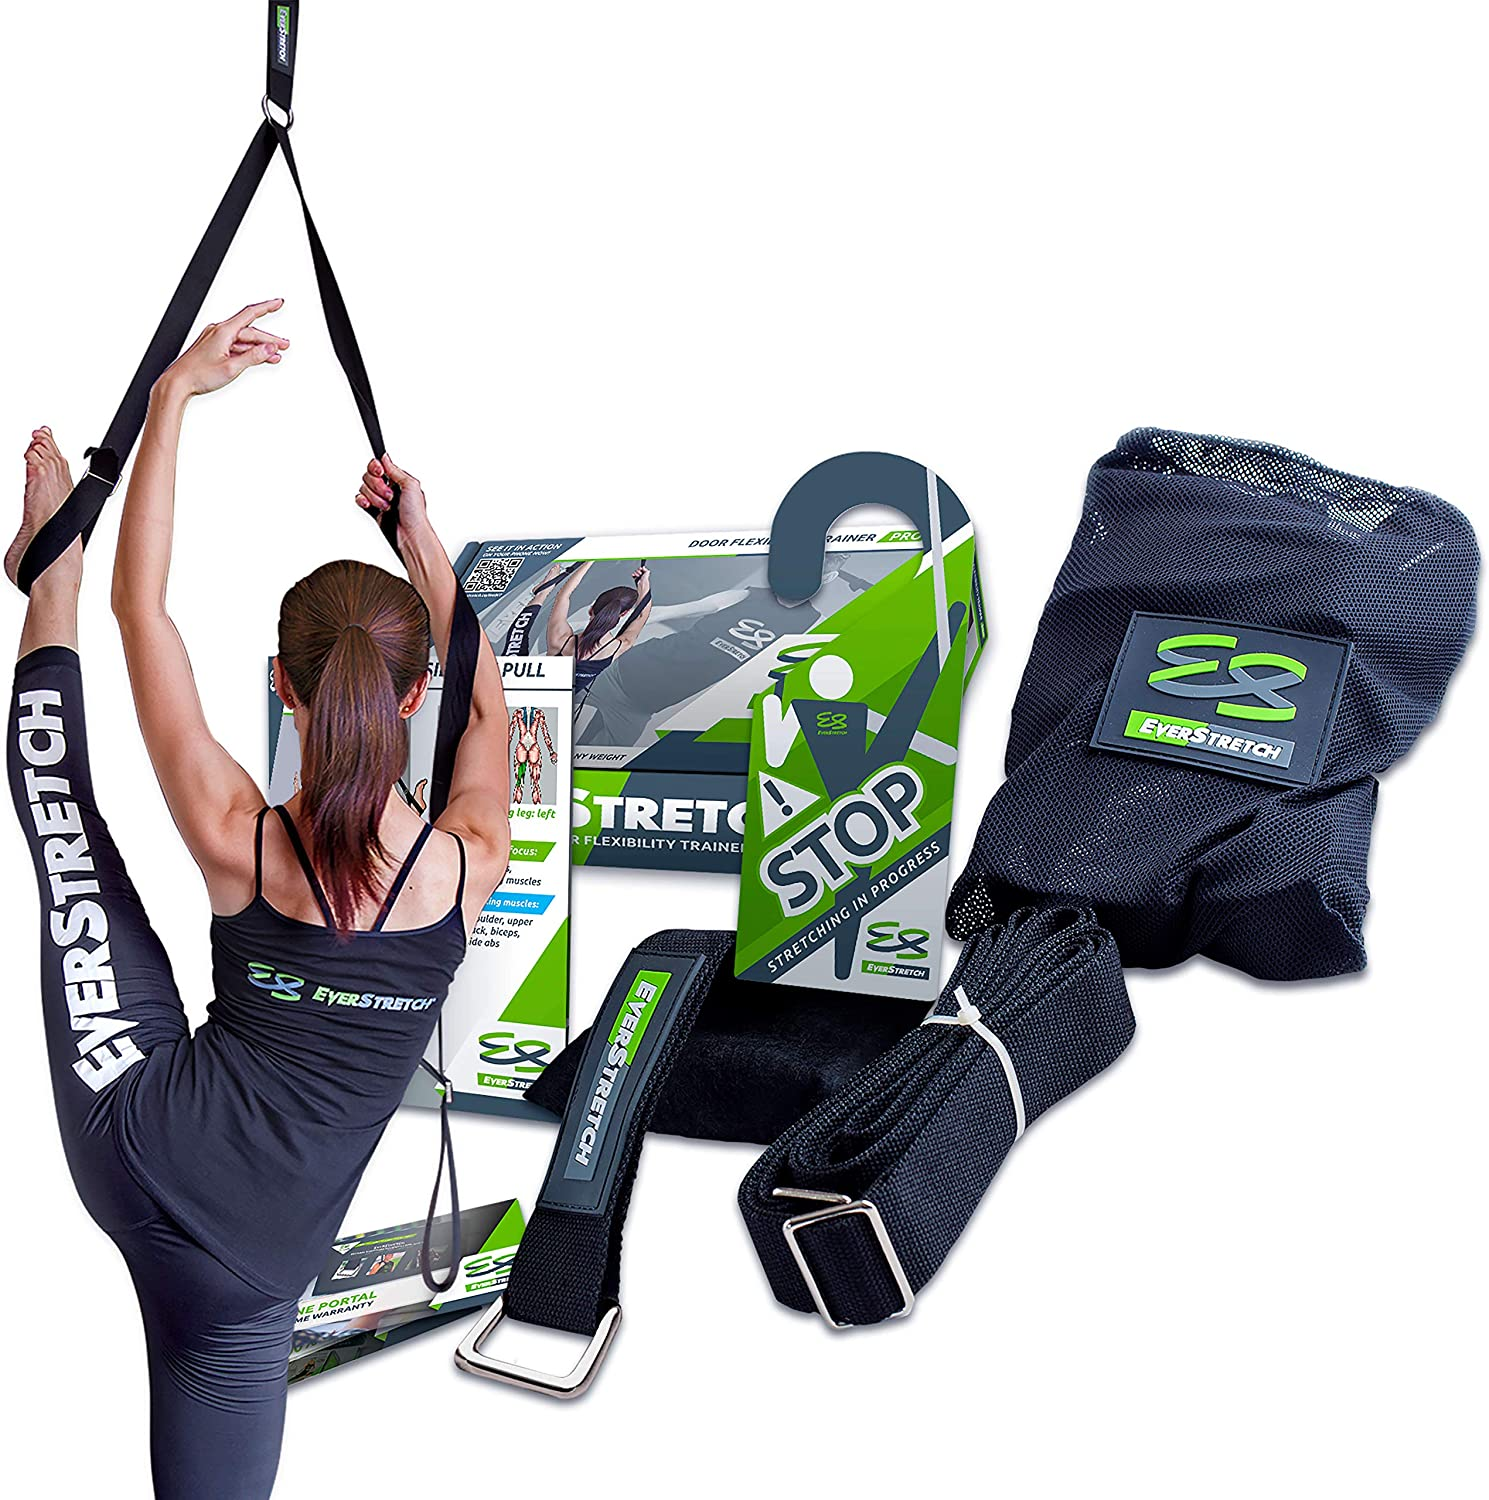 EverStretch Leg Stretcher: Get More Flexible with The Door Flexibility Trainer PRO Premium Stretching Equipment for Ballet, Dance, MMA, Taekwondo & Gymnastics. Your own Portable Stretch Machine! : Sports & Outdoors